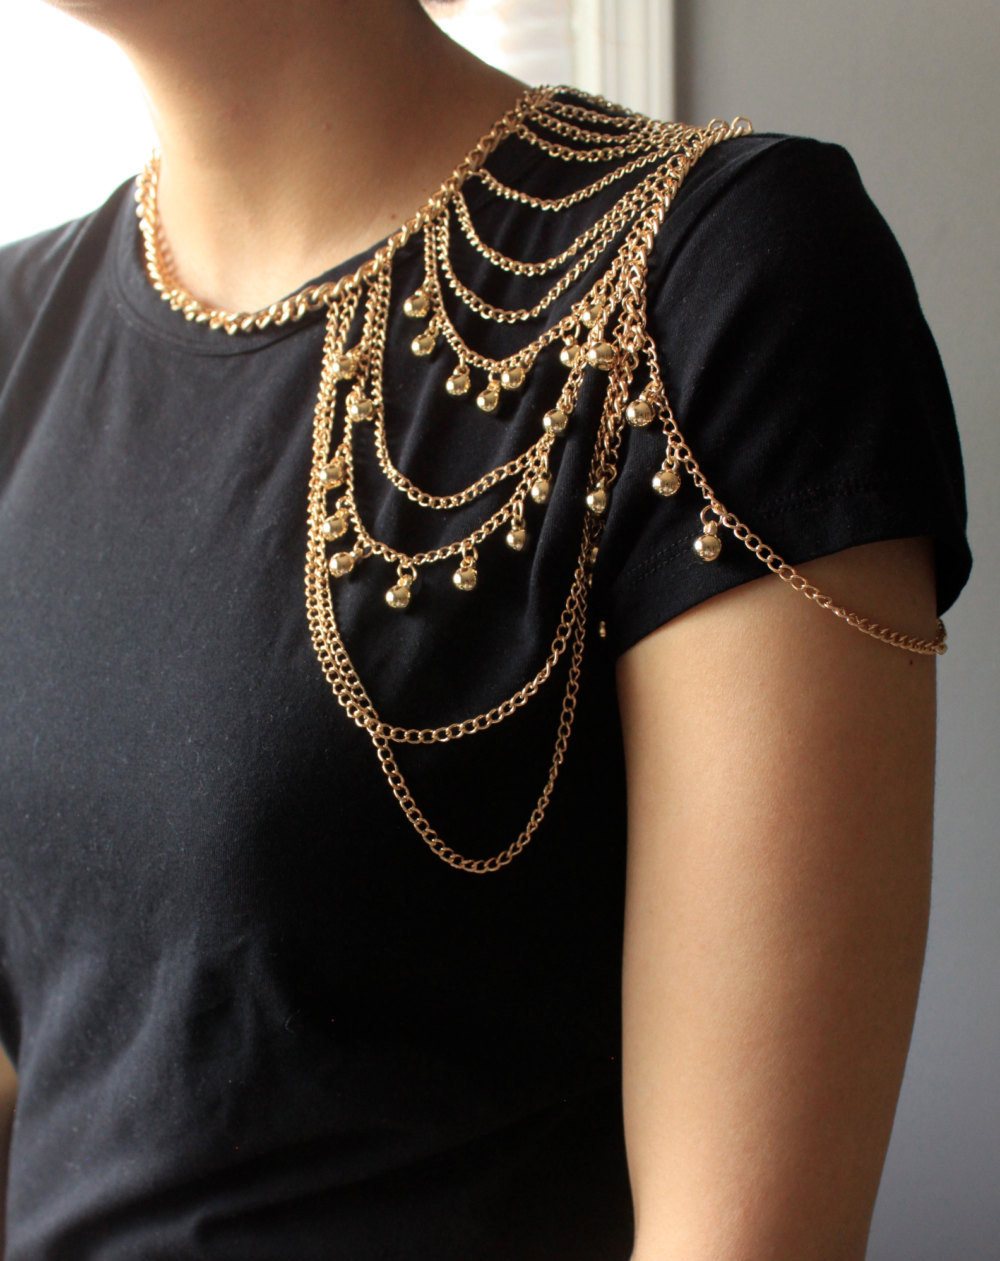 Body Chain Necklace  Shoulder Jewelry Gold Shoulder Chain Body by SusVintage on